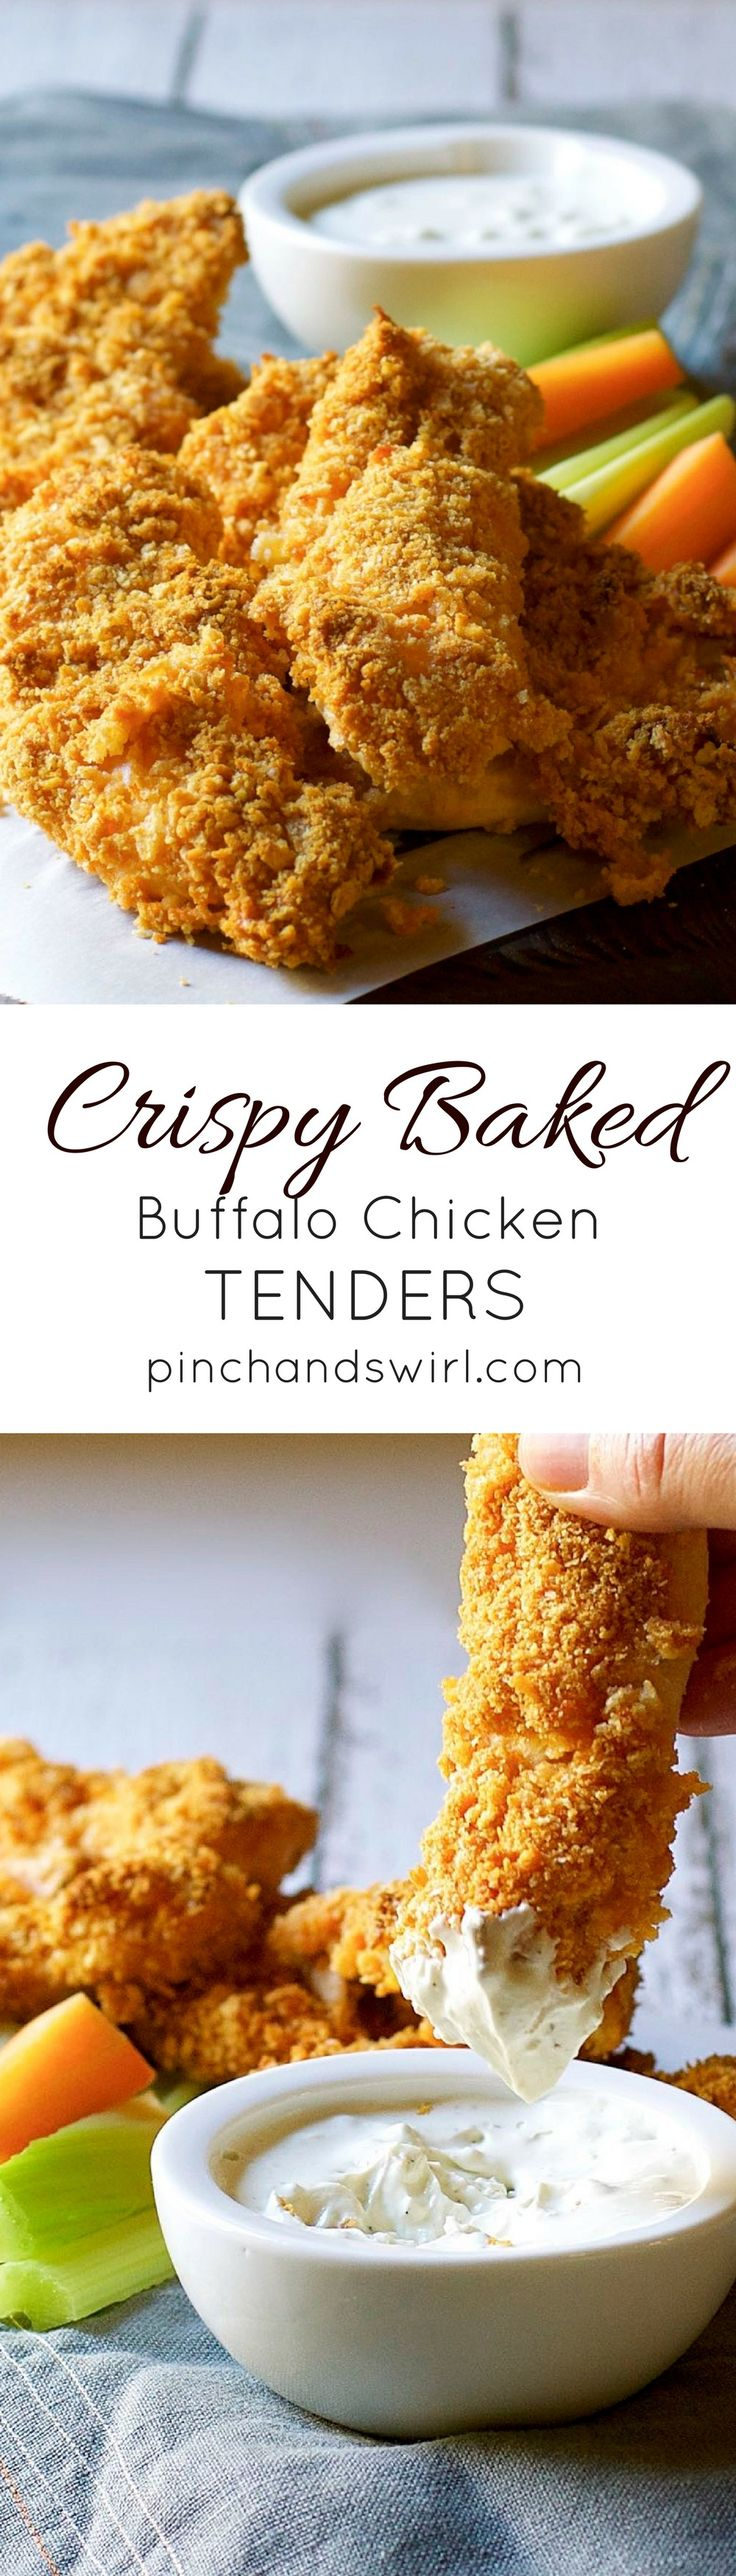 Make truly crispy baked chicken tenders with this simple technique. The secret to these crispy chicken tenders is to coat them first with homemade buffalo sauce then dredge them in toasted panko breadcrumbs. Crispy baked tenders are all about double toast